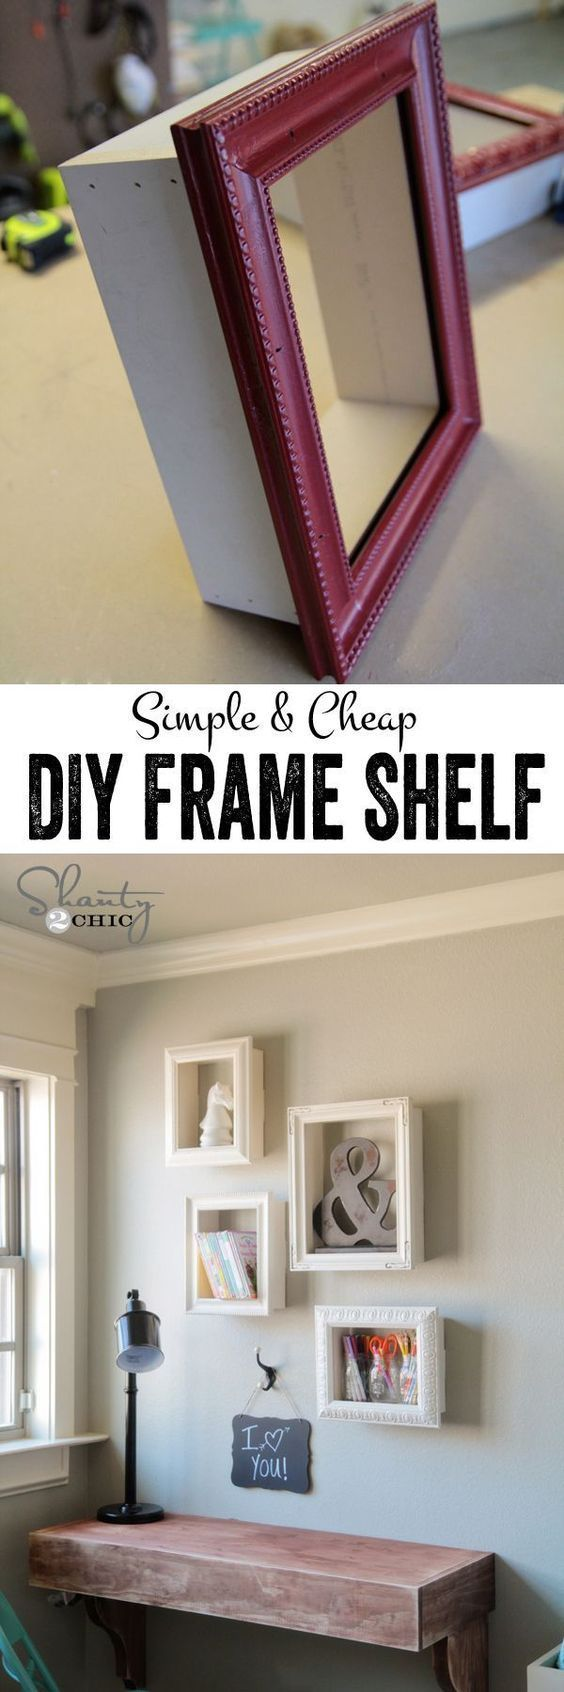 111 World's Most Loved DIY Projects – Homesthetics Magazine